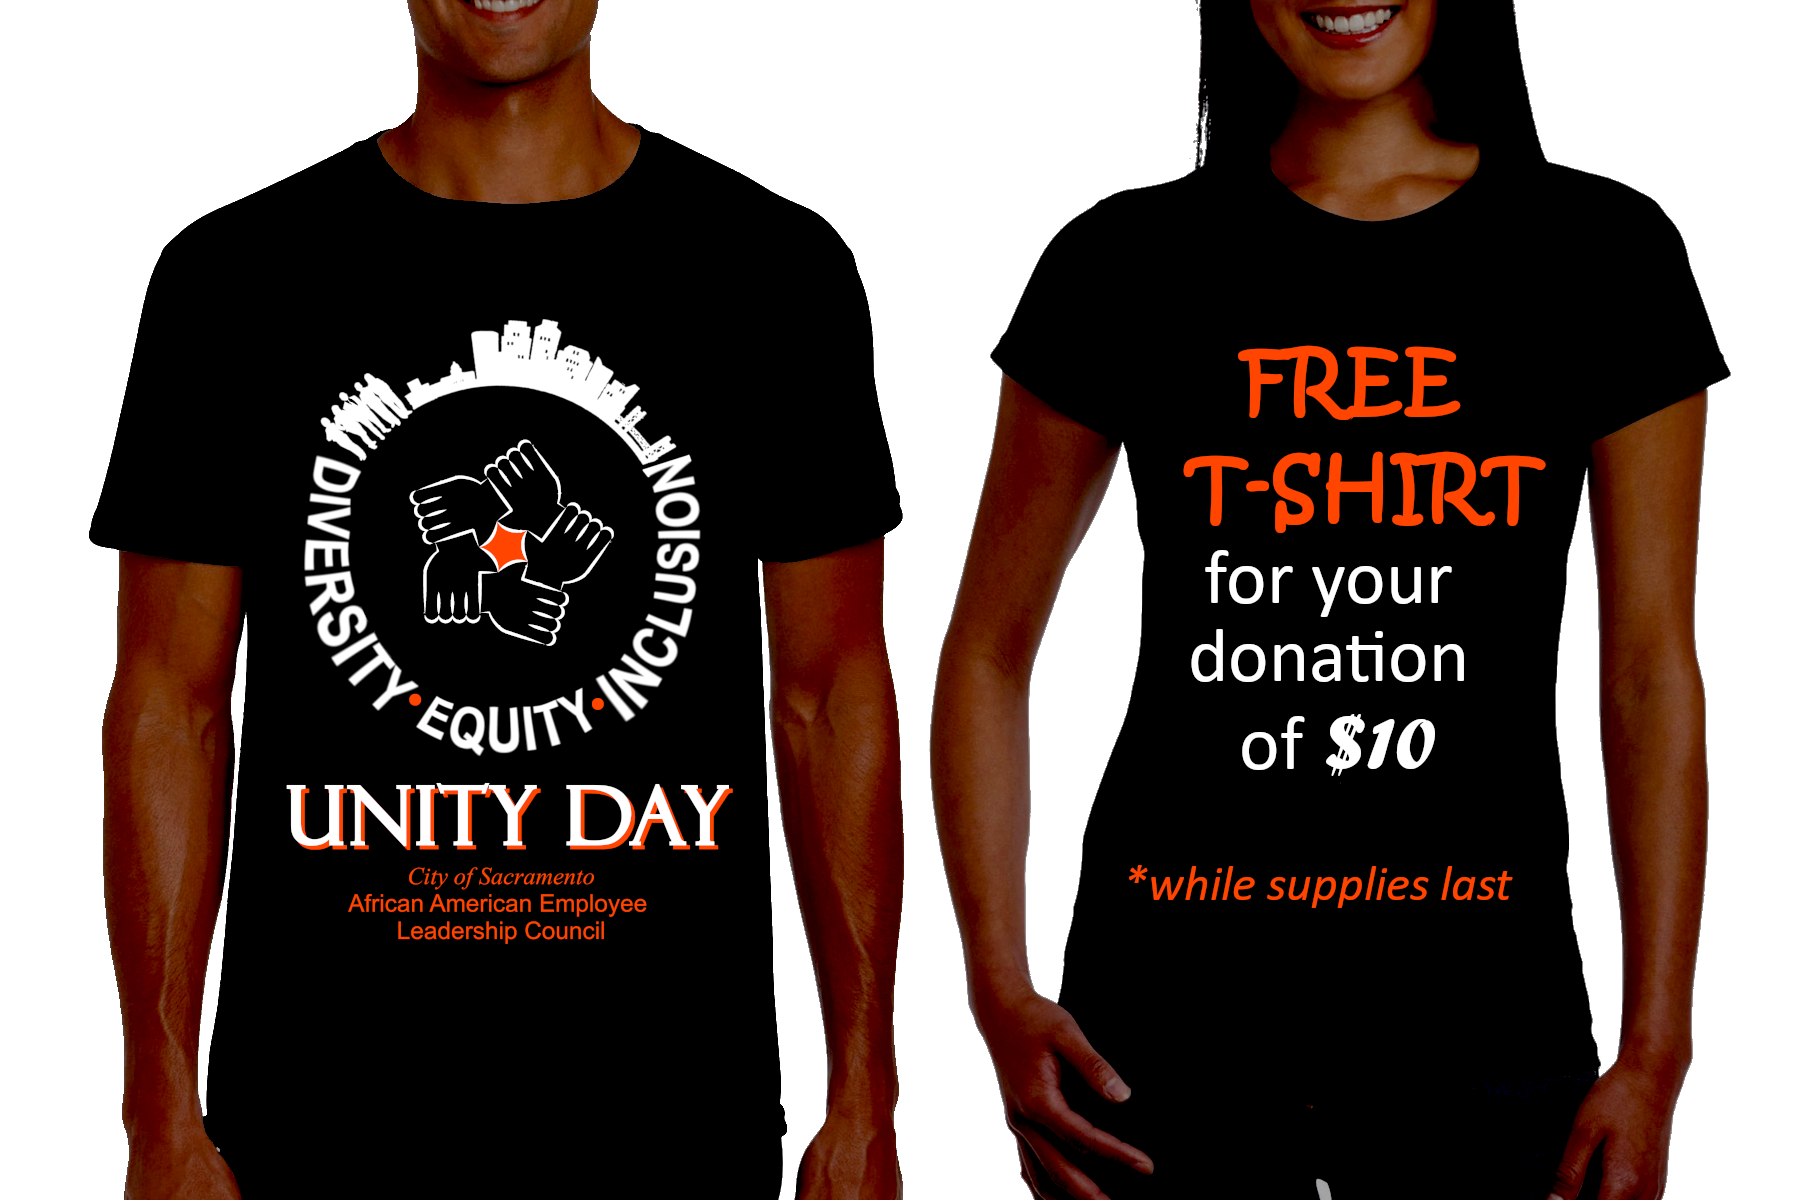 Donate $10 and receive a free Unity Day t-shirt while supplies last.